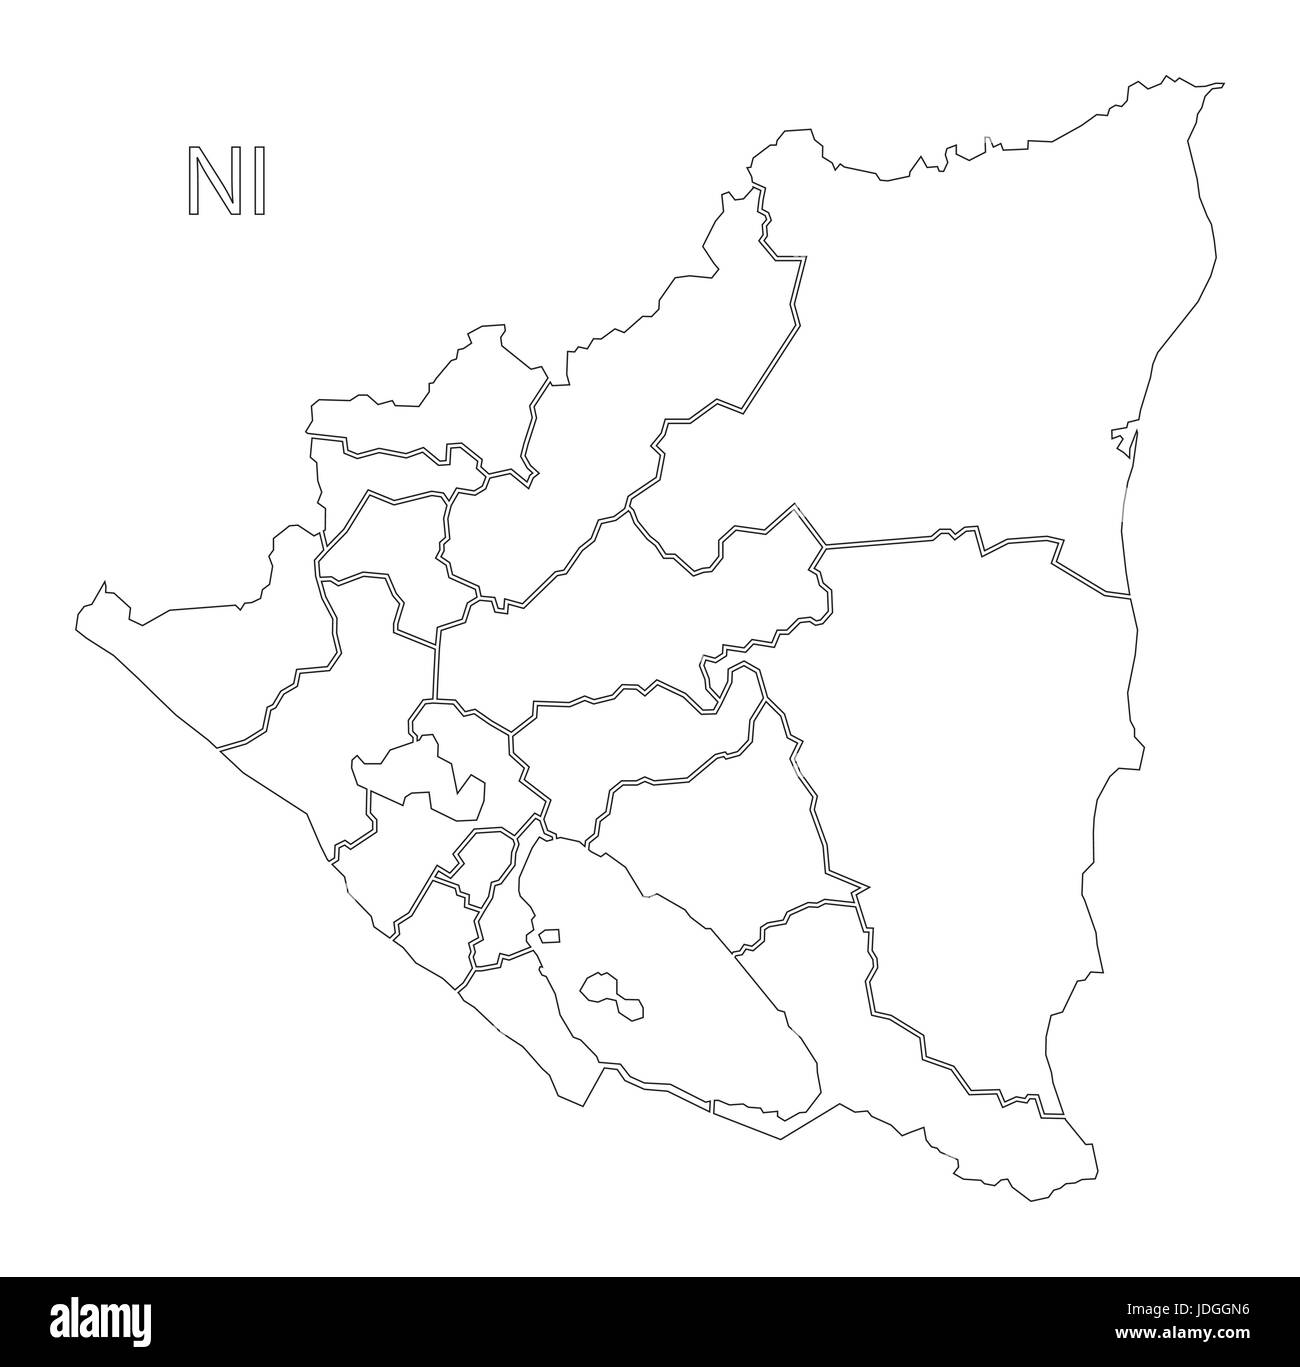 Nicaragua regions outline silhouette map illustration with black